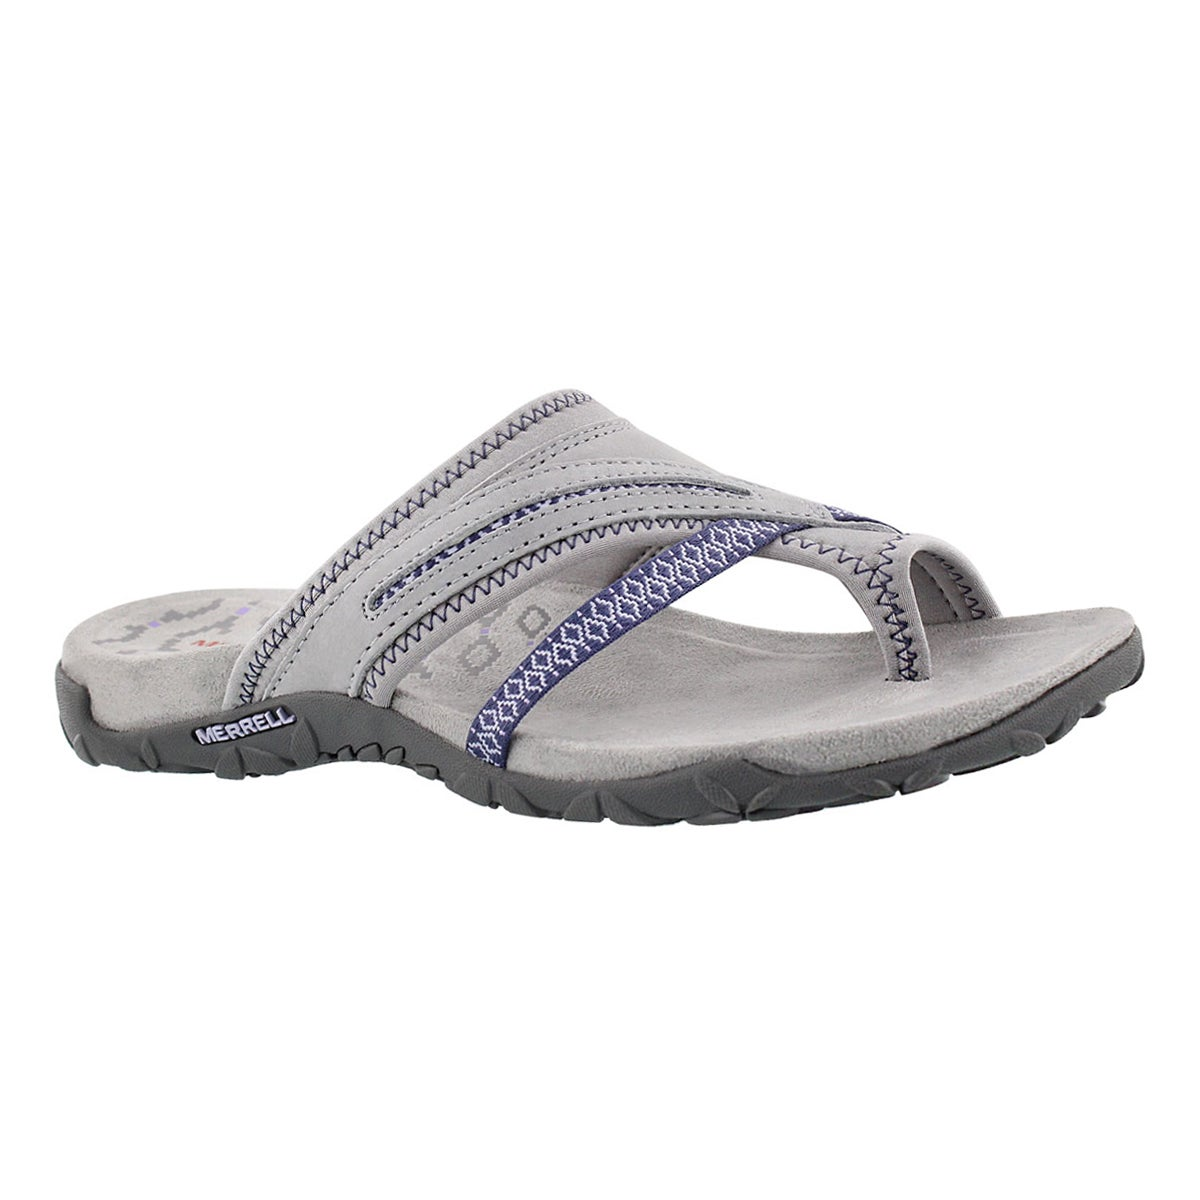 Women's TERRAN POST II sleet toe wrap sandals